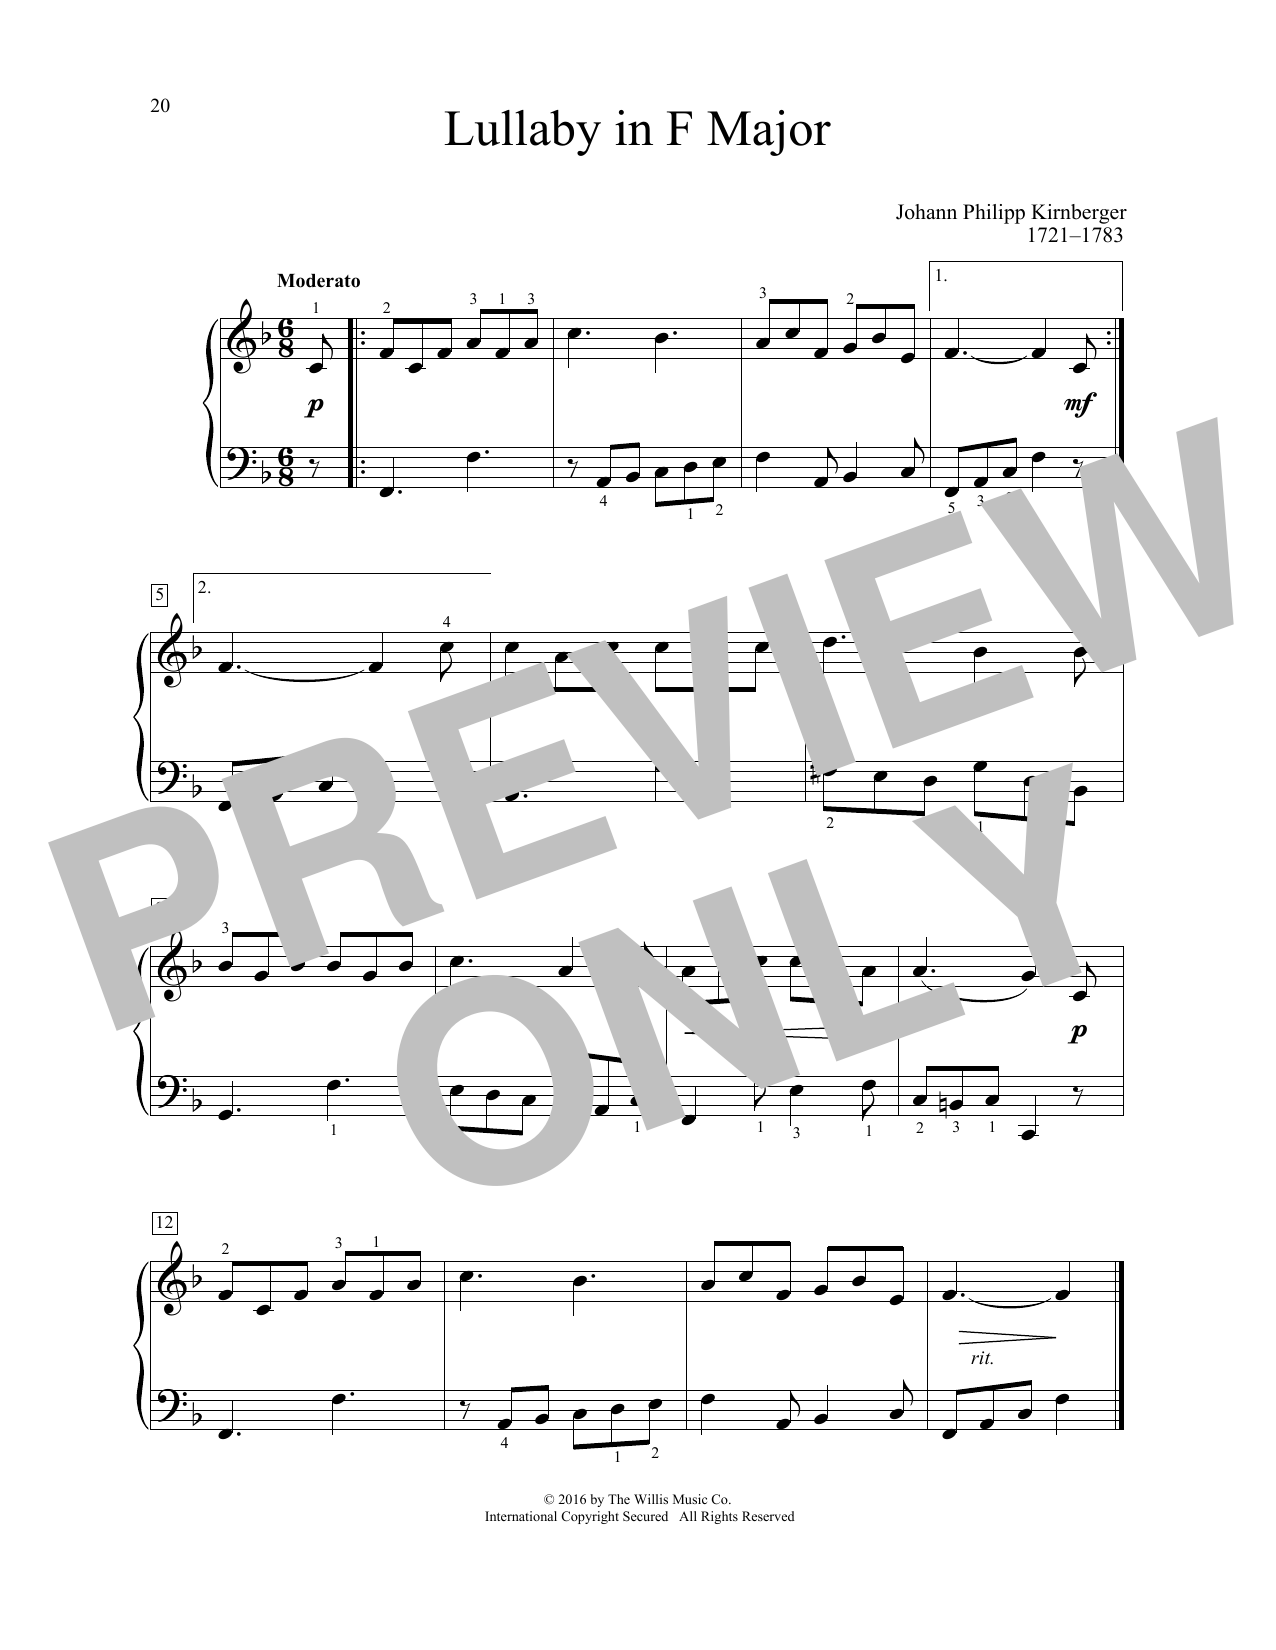 Johann Philipp Kirnberger Lullaby In F Major sheet music notes and chords. Download Printable PDF.